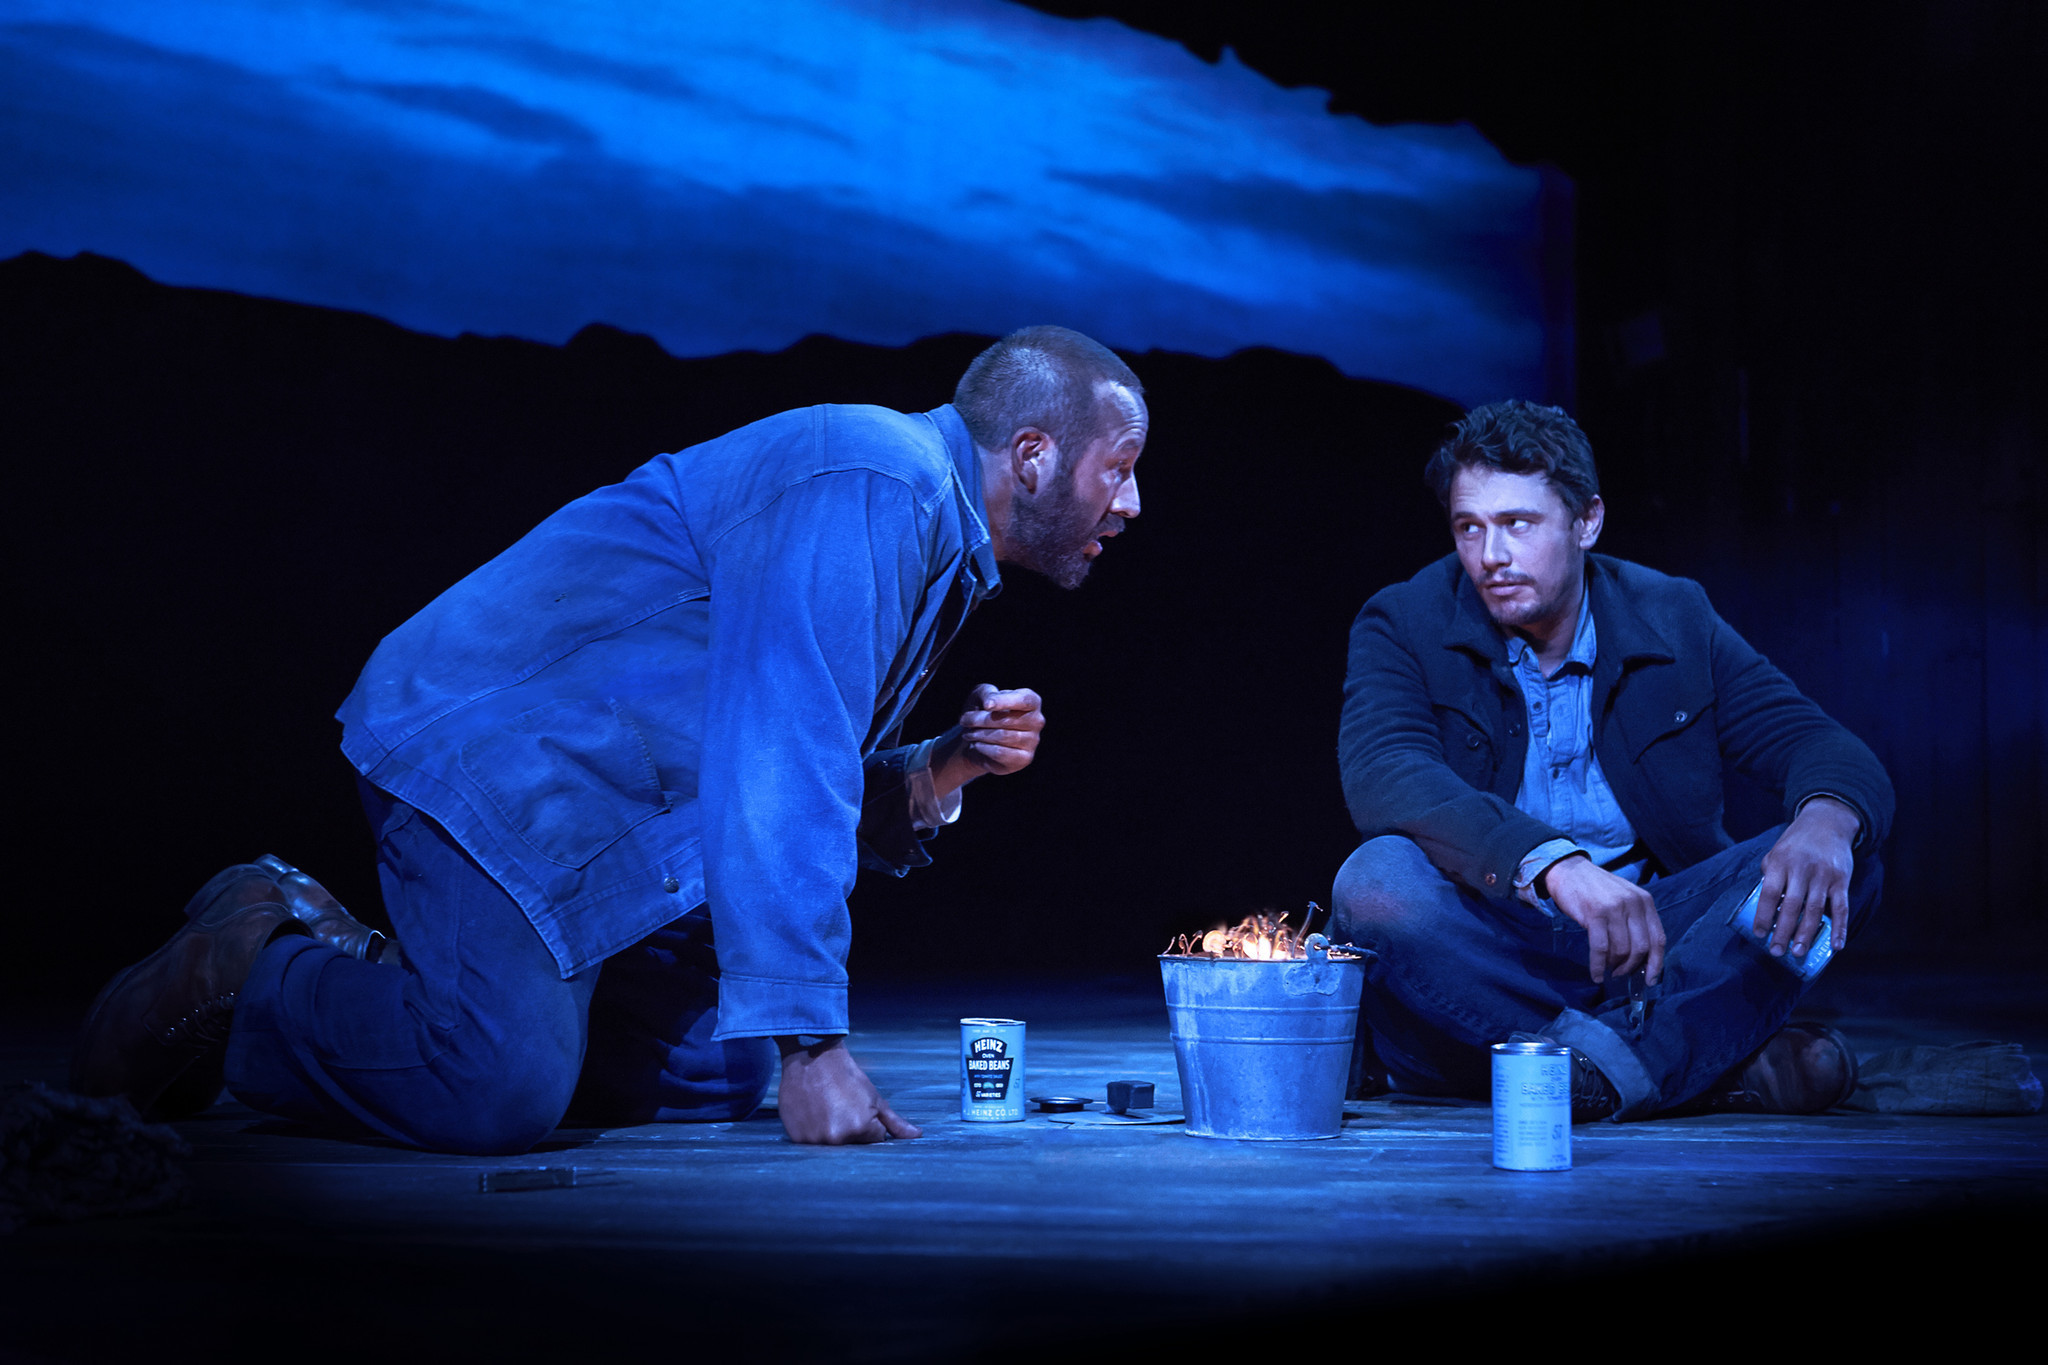 of mice and men review This touching tale of the friendship between two very different men is set against the backdrop of the united states during the 1930s.